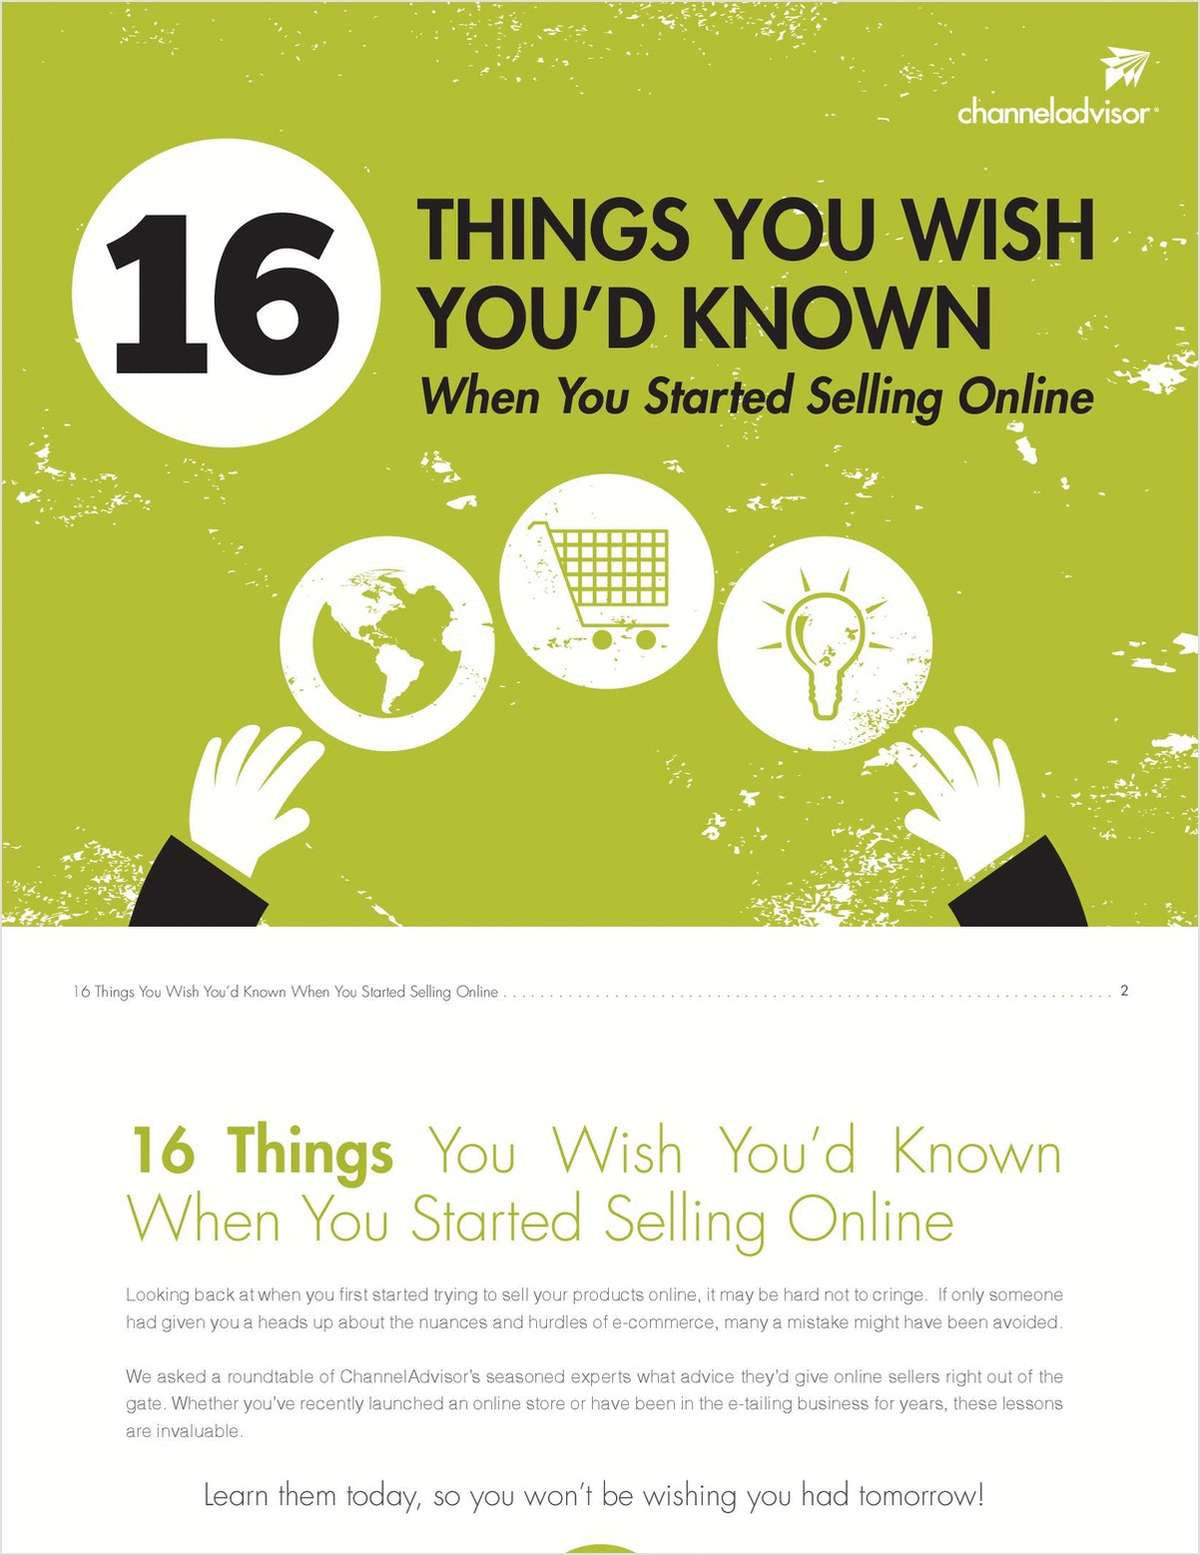 16 Things You Wish You'd Known When You Started Selling Online